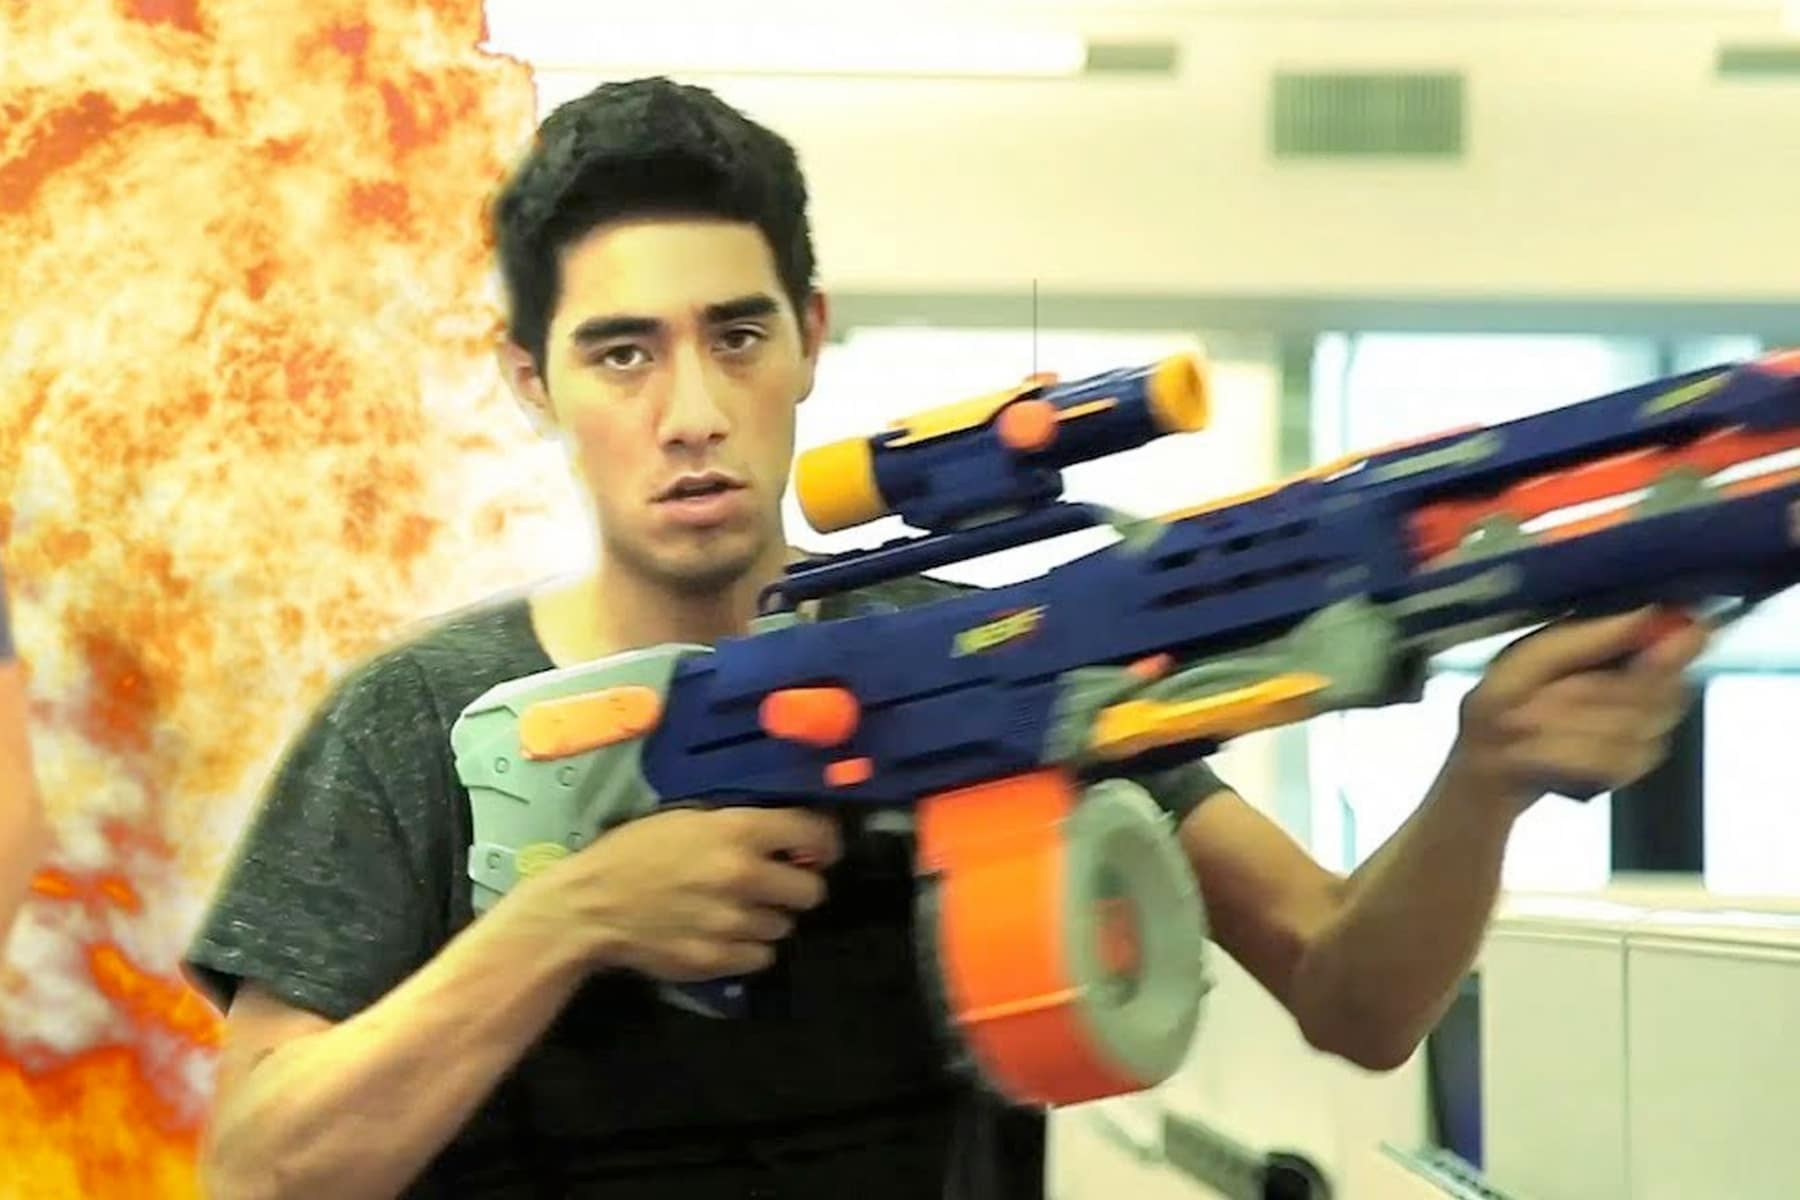 15 Best NERF Guns to Wage Workplace Warfare